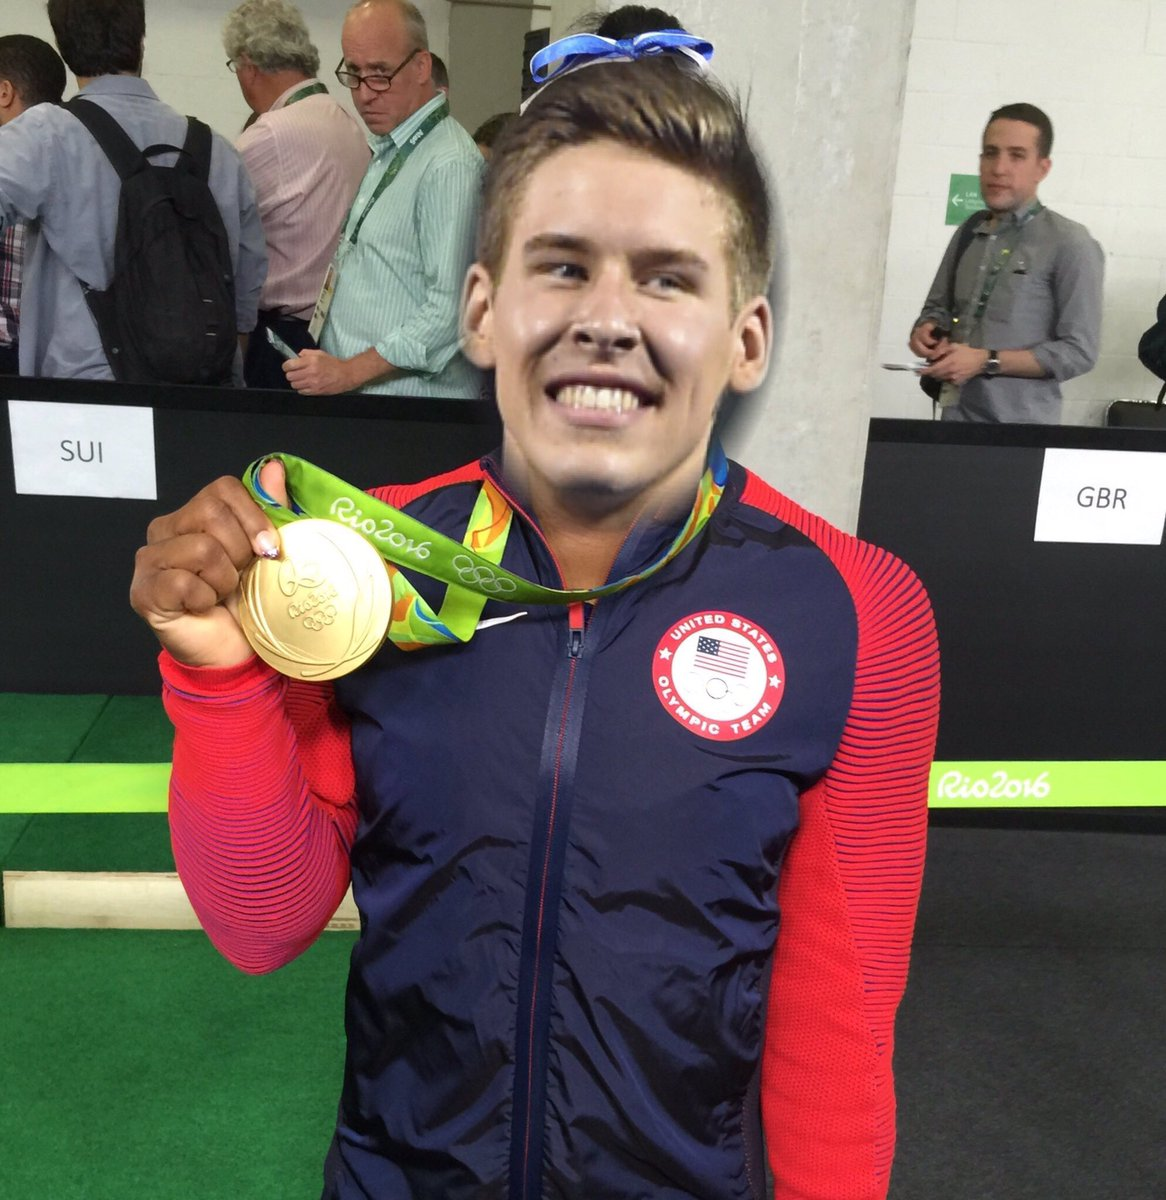 Things me and Phelps have in common, we both have Olympic gold medals!!